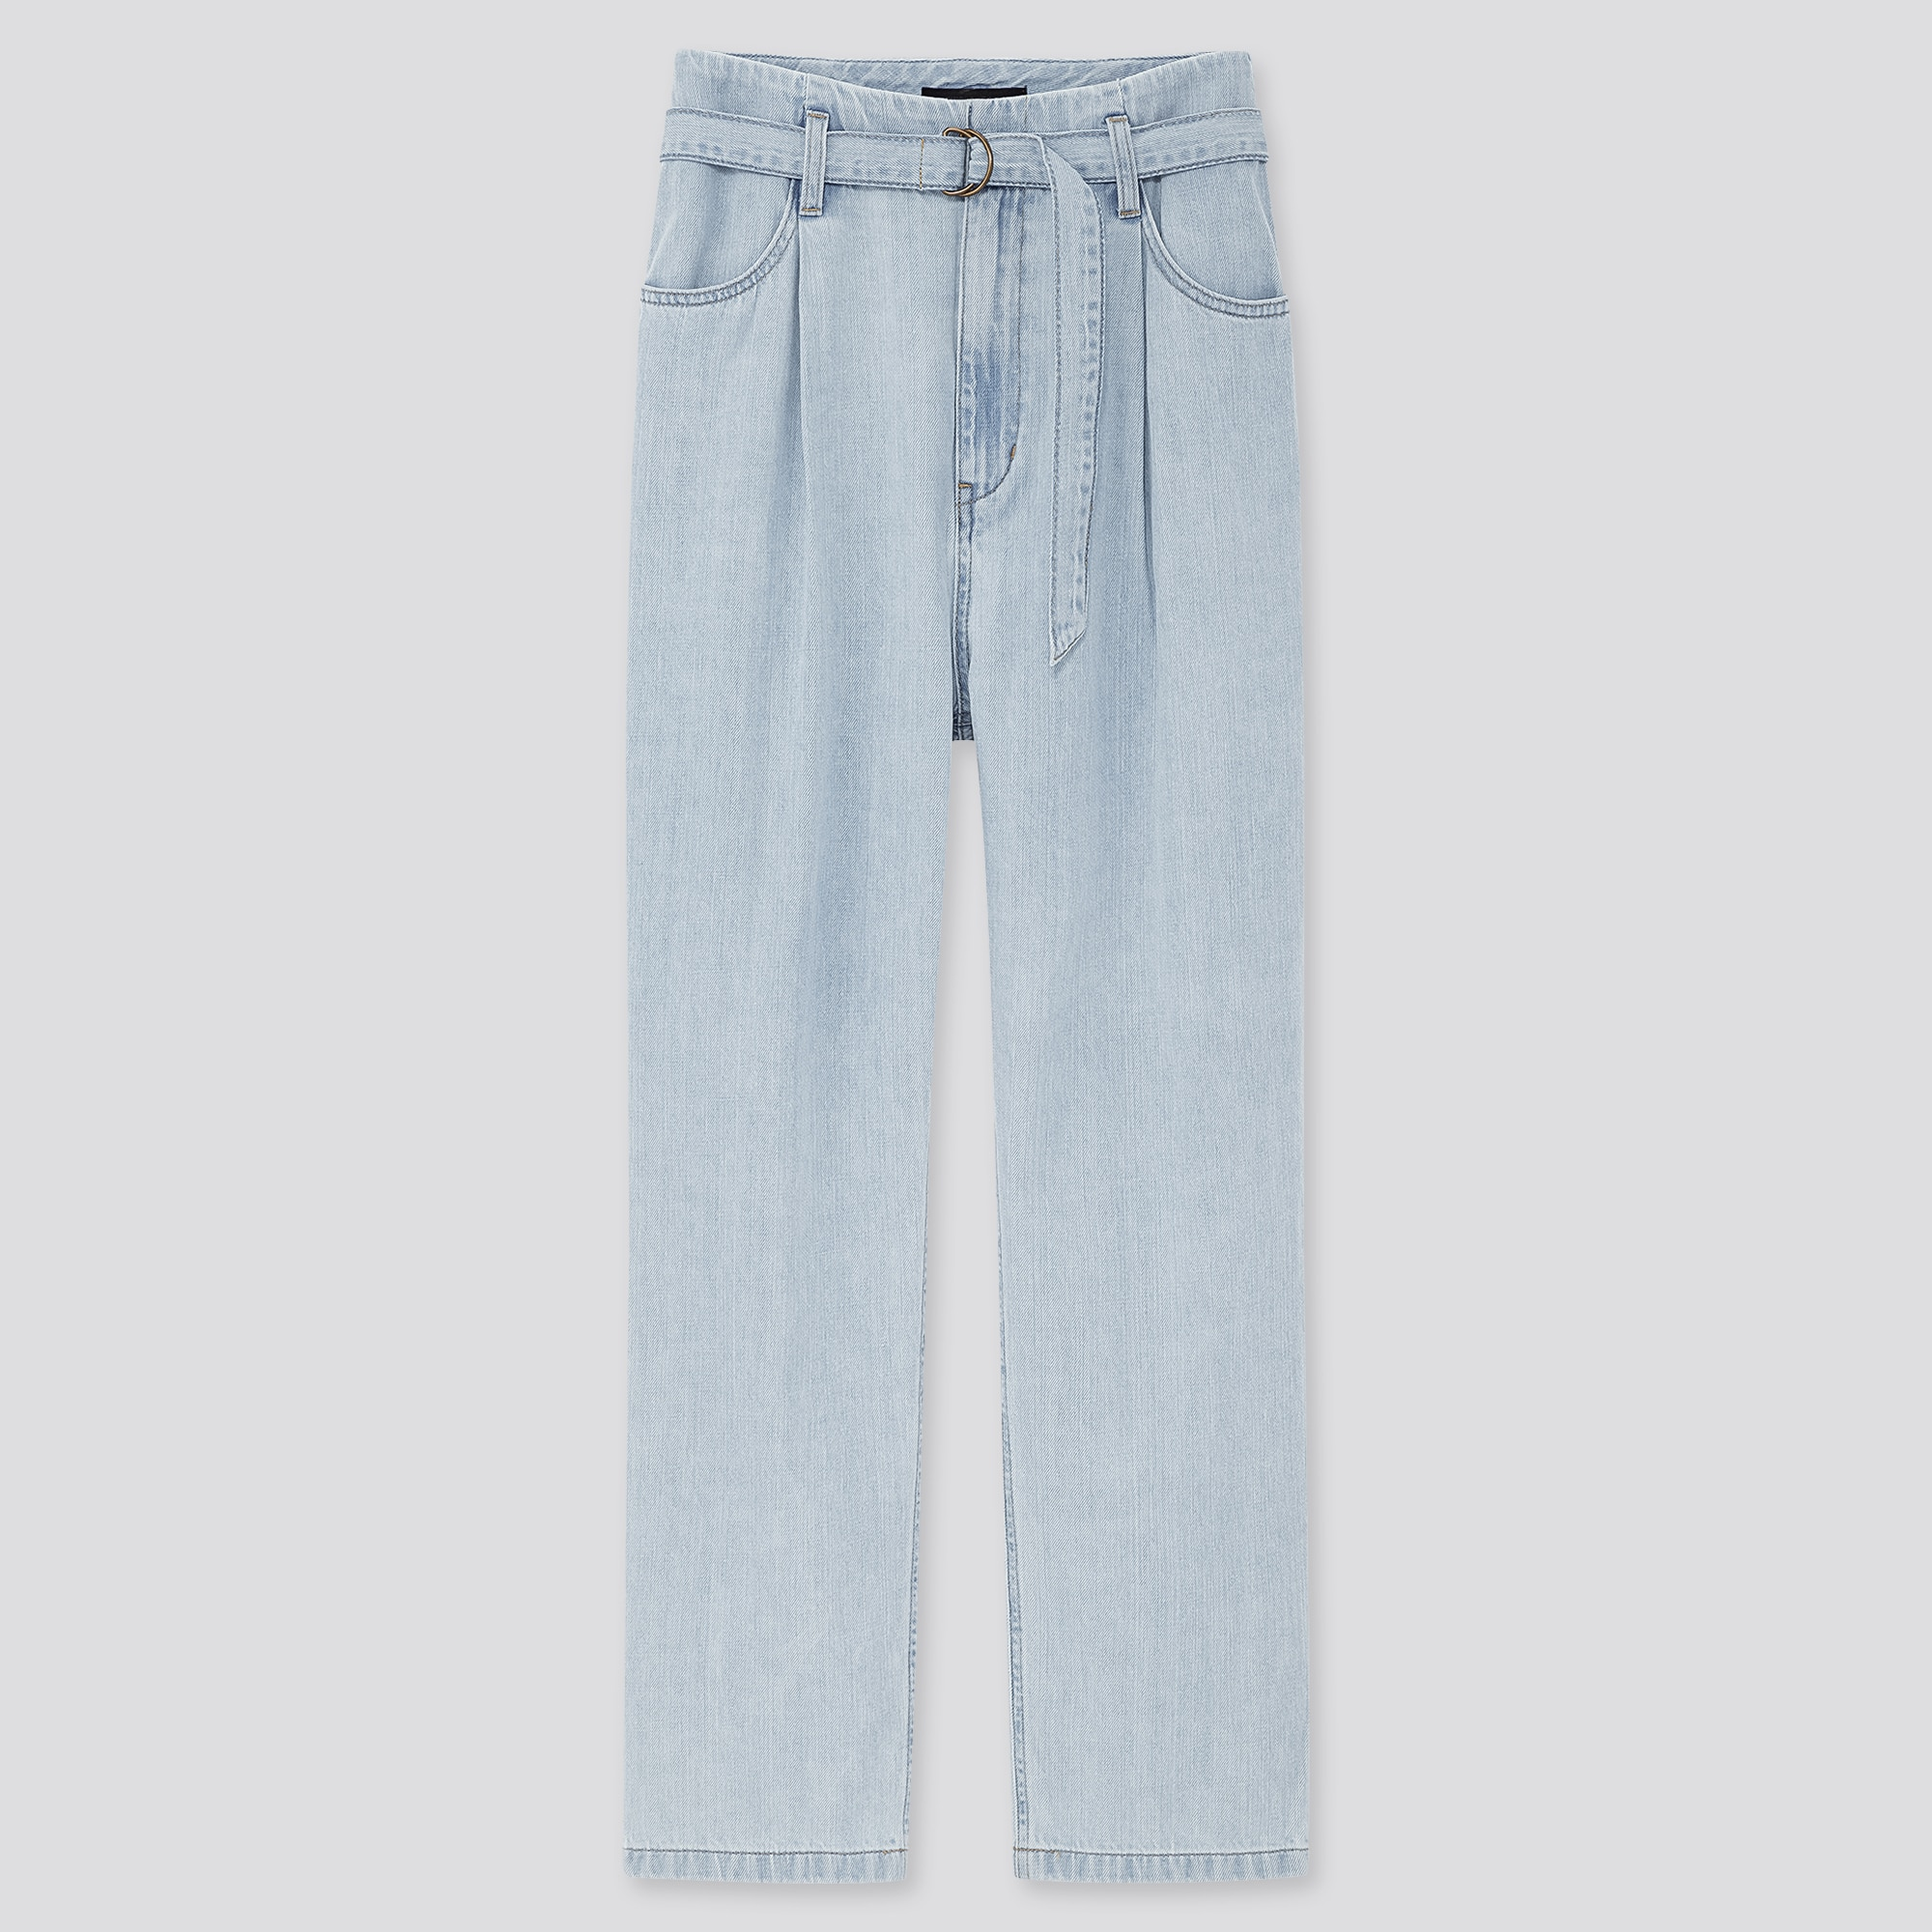 WOMEN HIGH RISE BELTED PLEATED JEANS